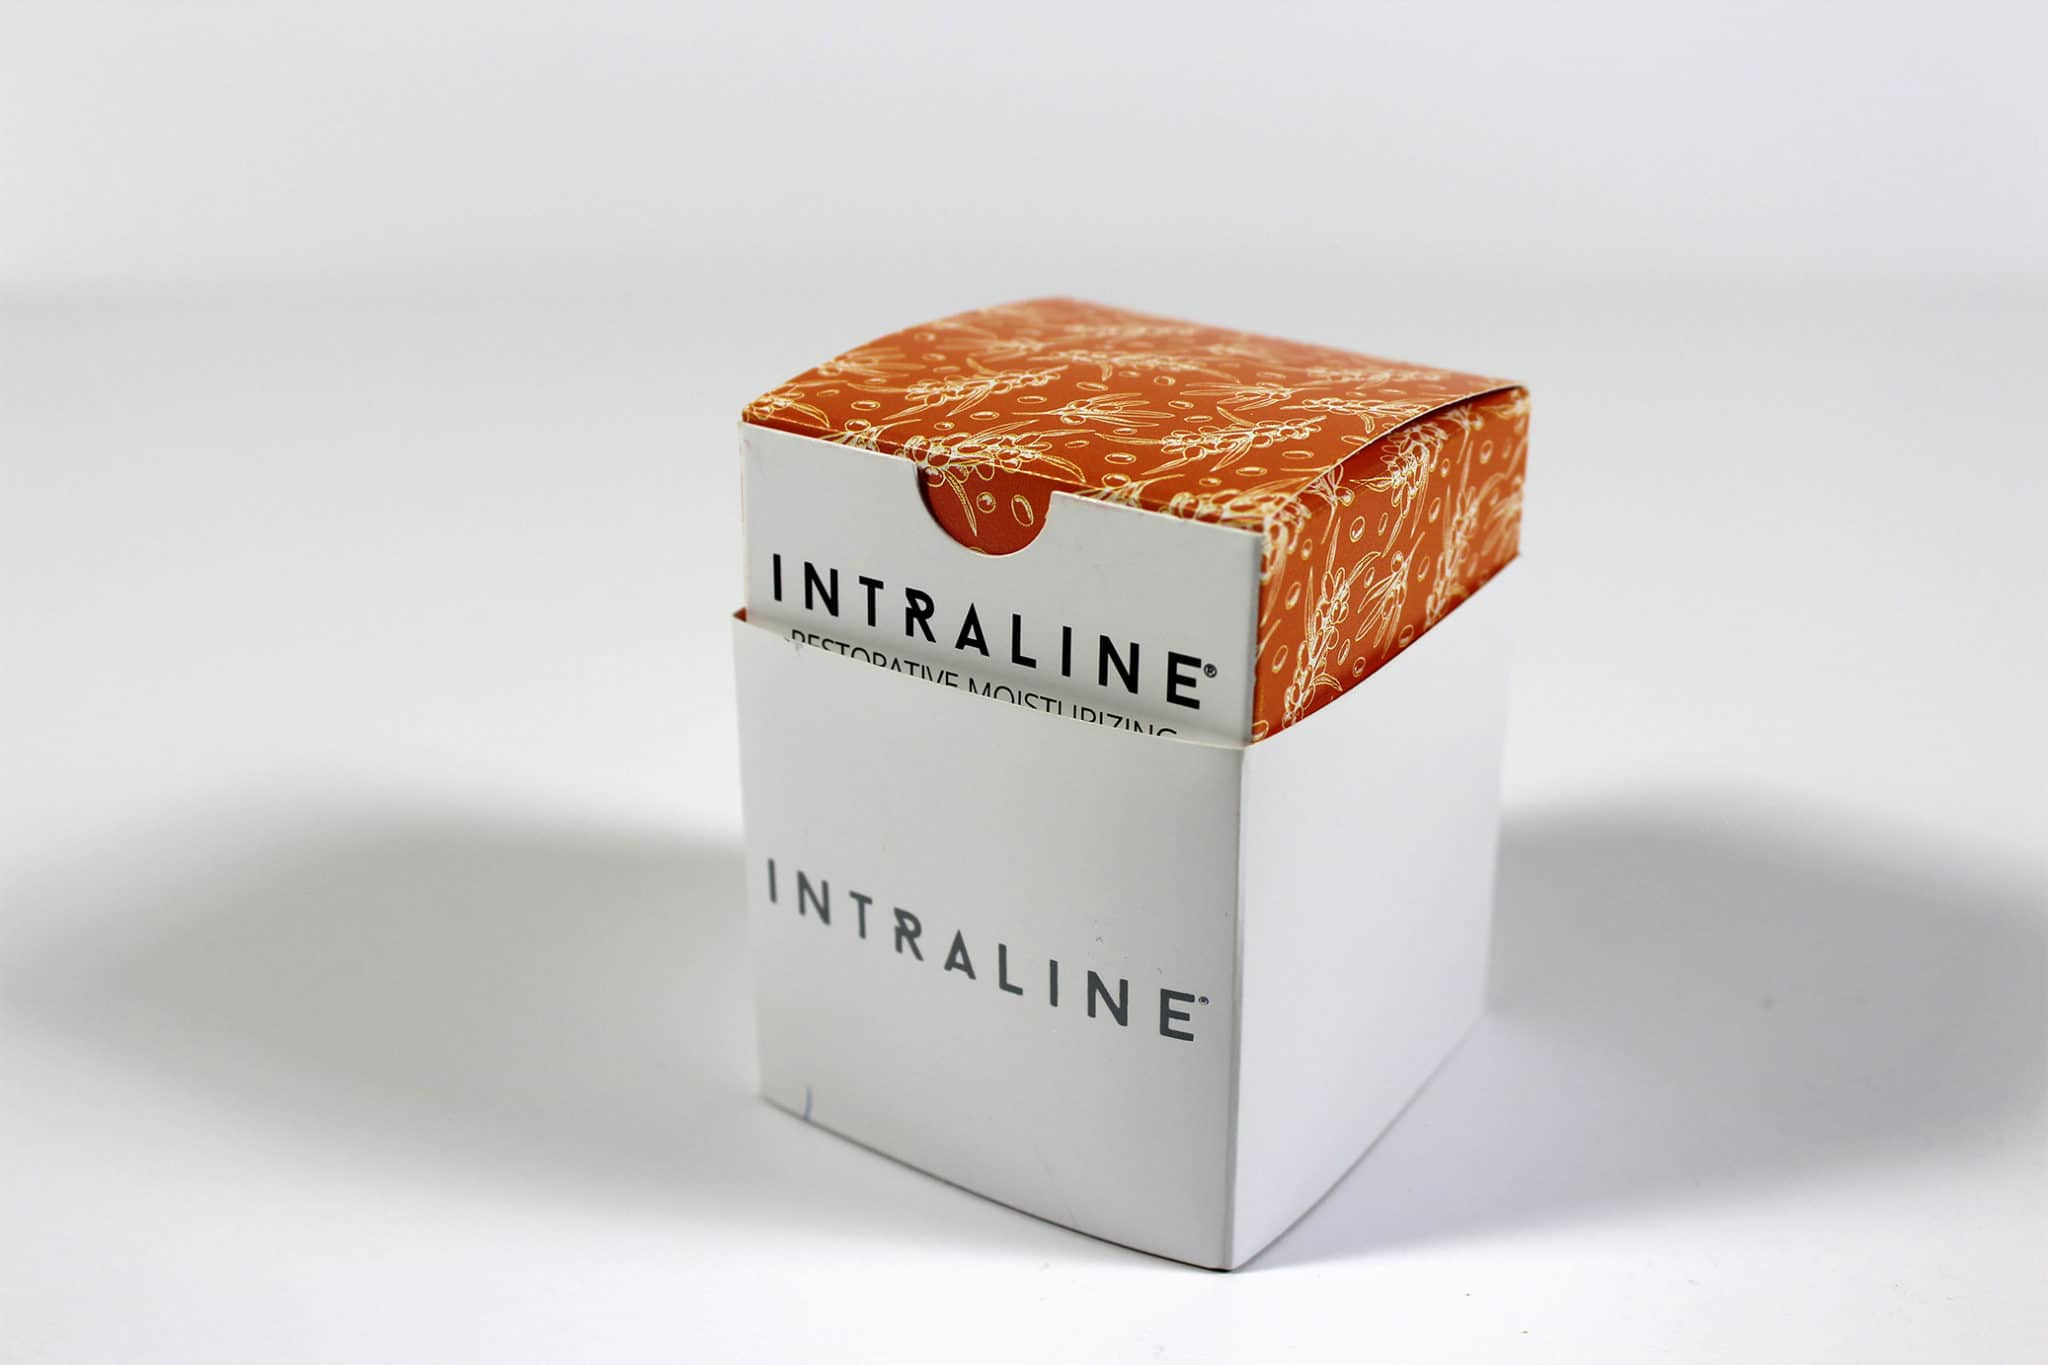 Colourful printed cosmetic packaging box for Intraline with outer sleeve wrapped round it